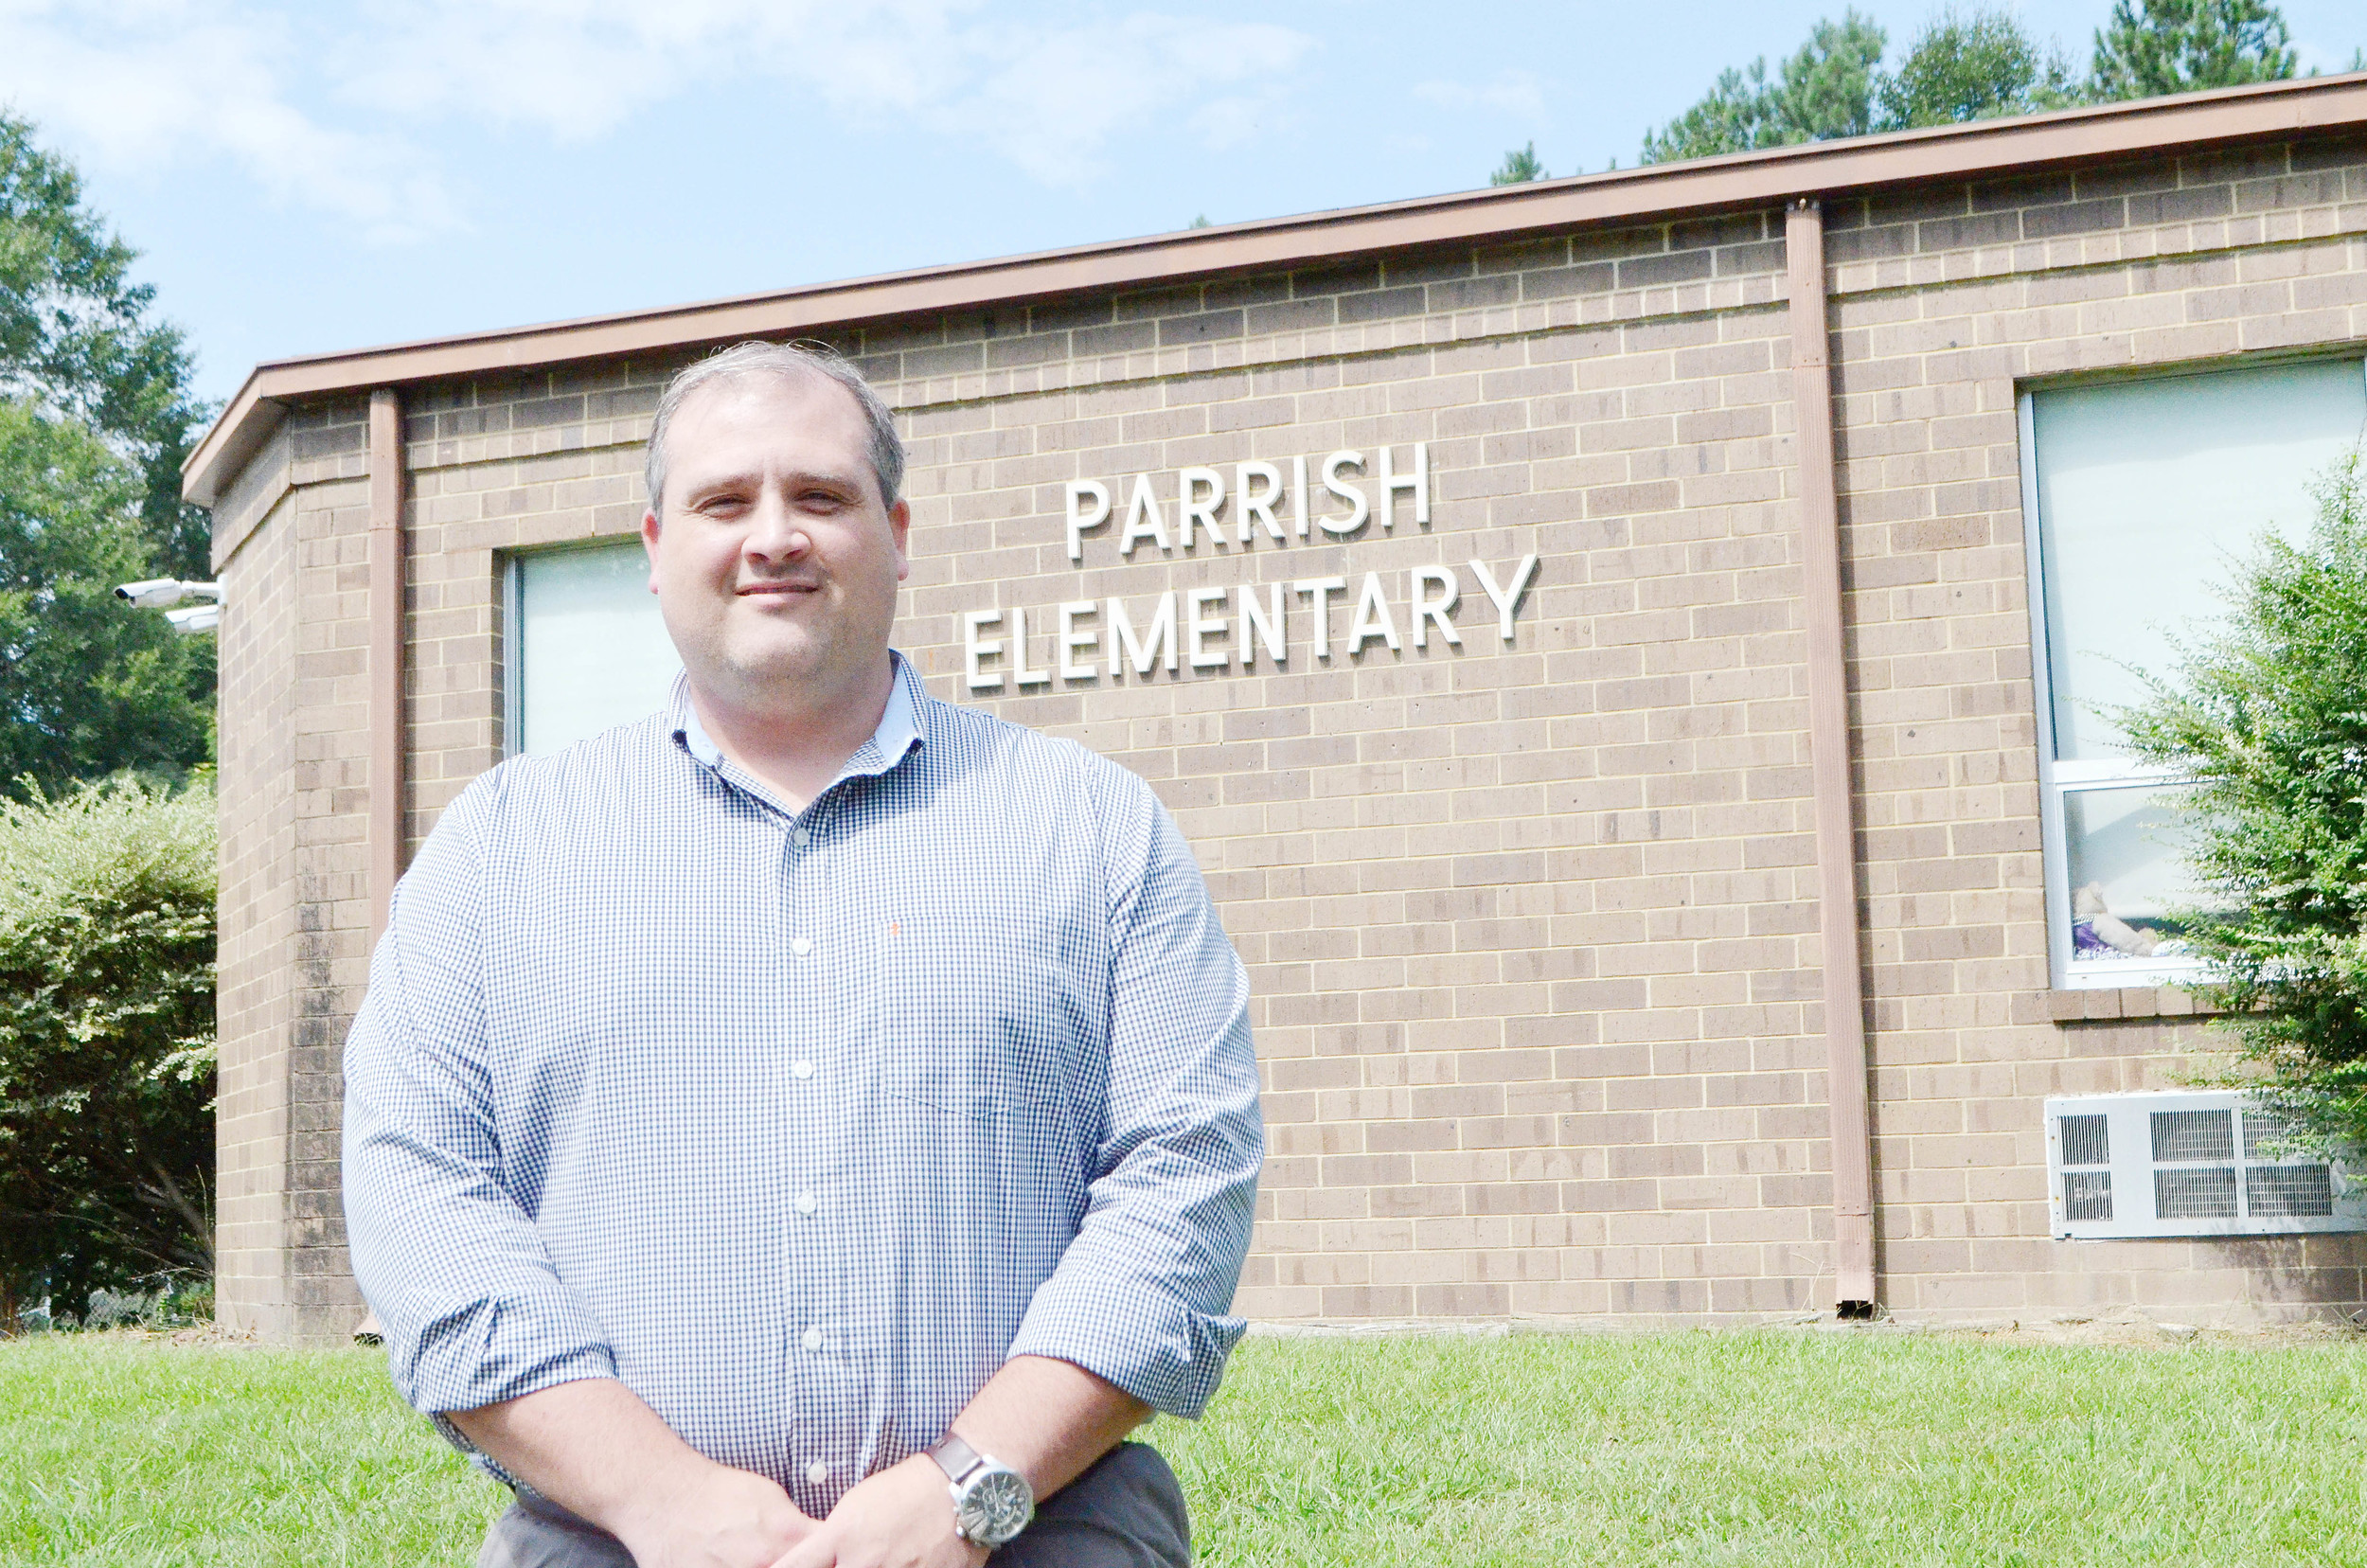 Thomas Kyzer will lead Parrish Elementary during the upcoming school year as the school's new principal. Daily Mountain Eagle - Nicole Smith